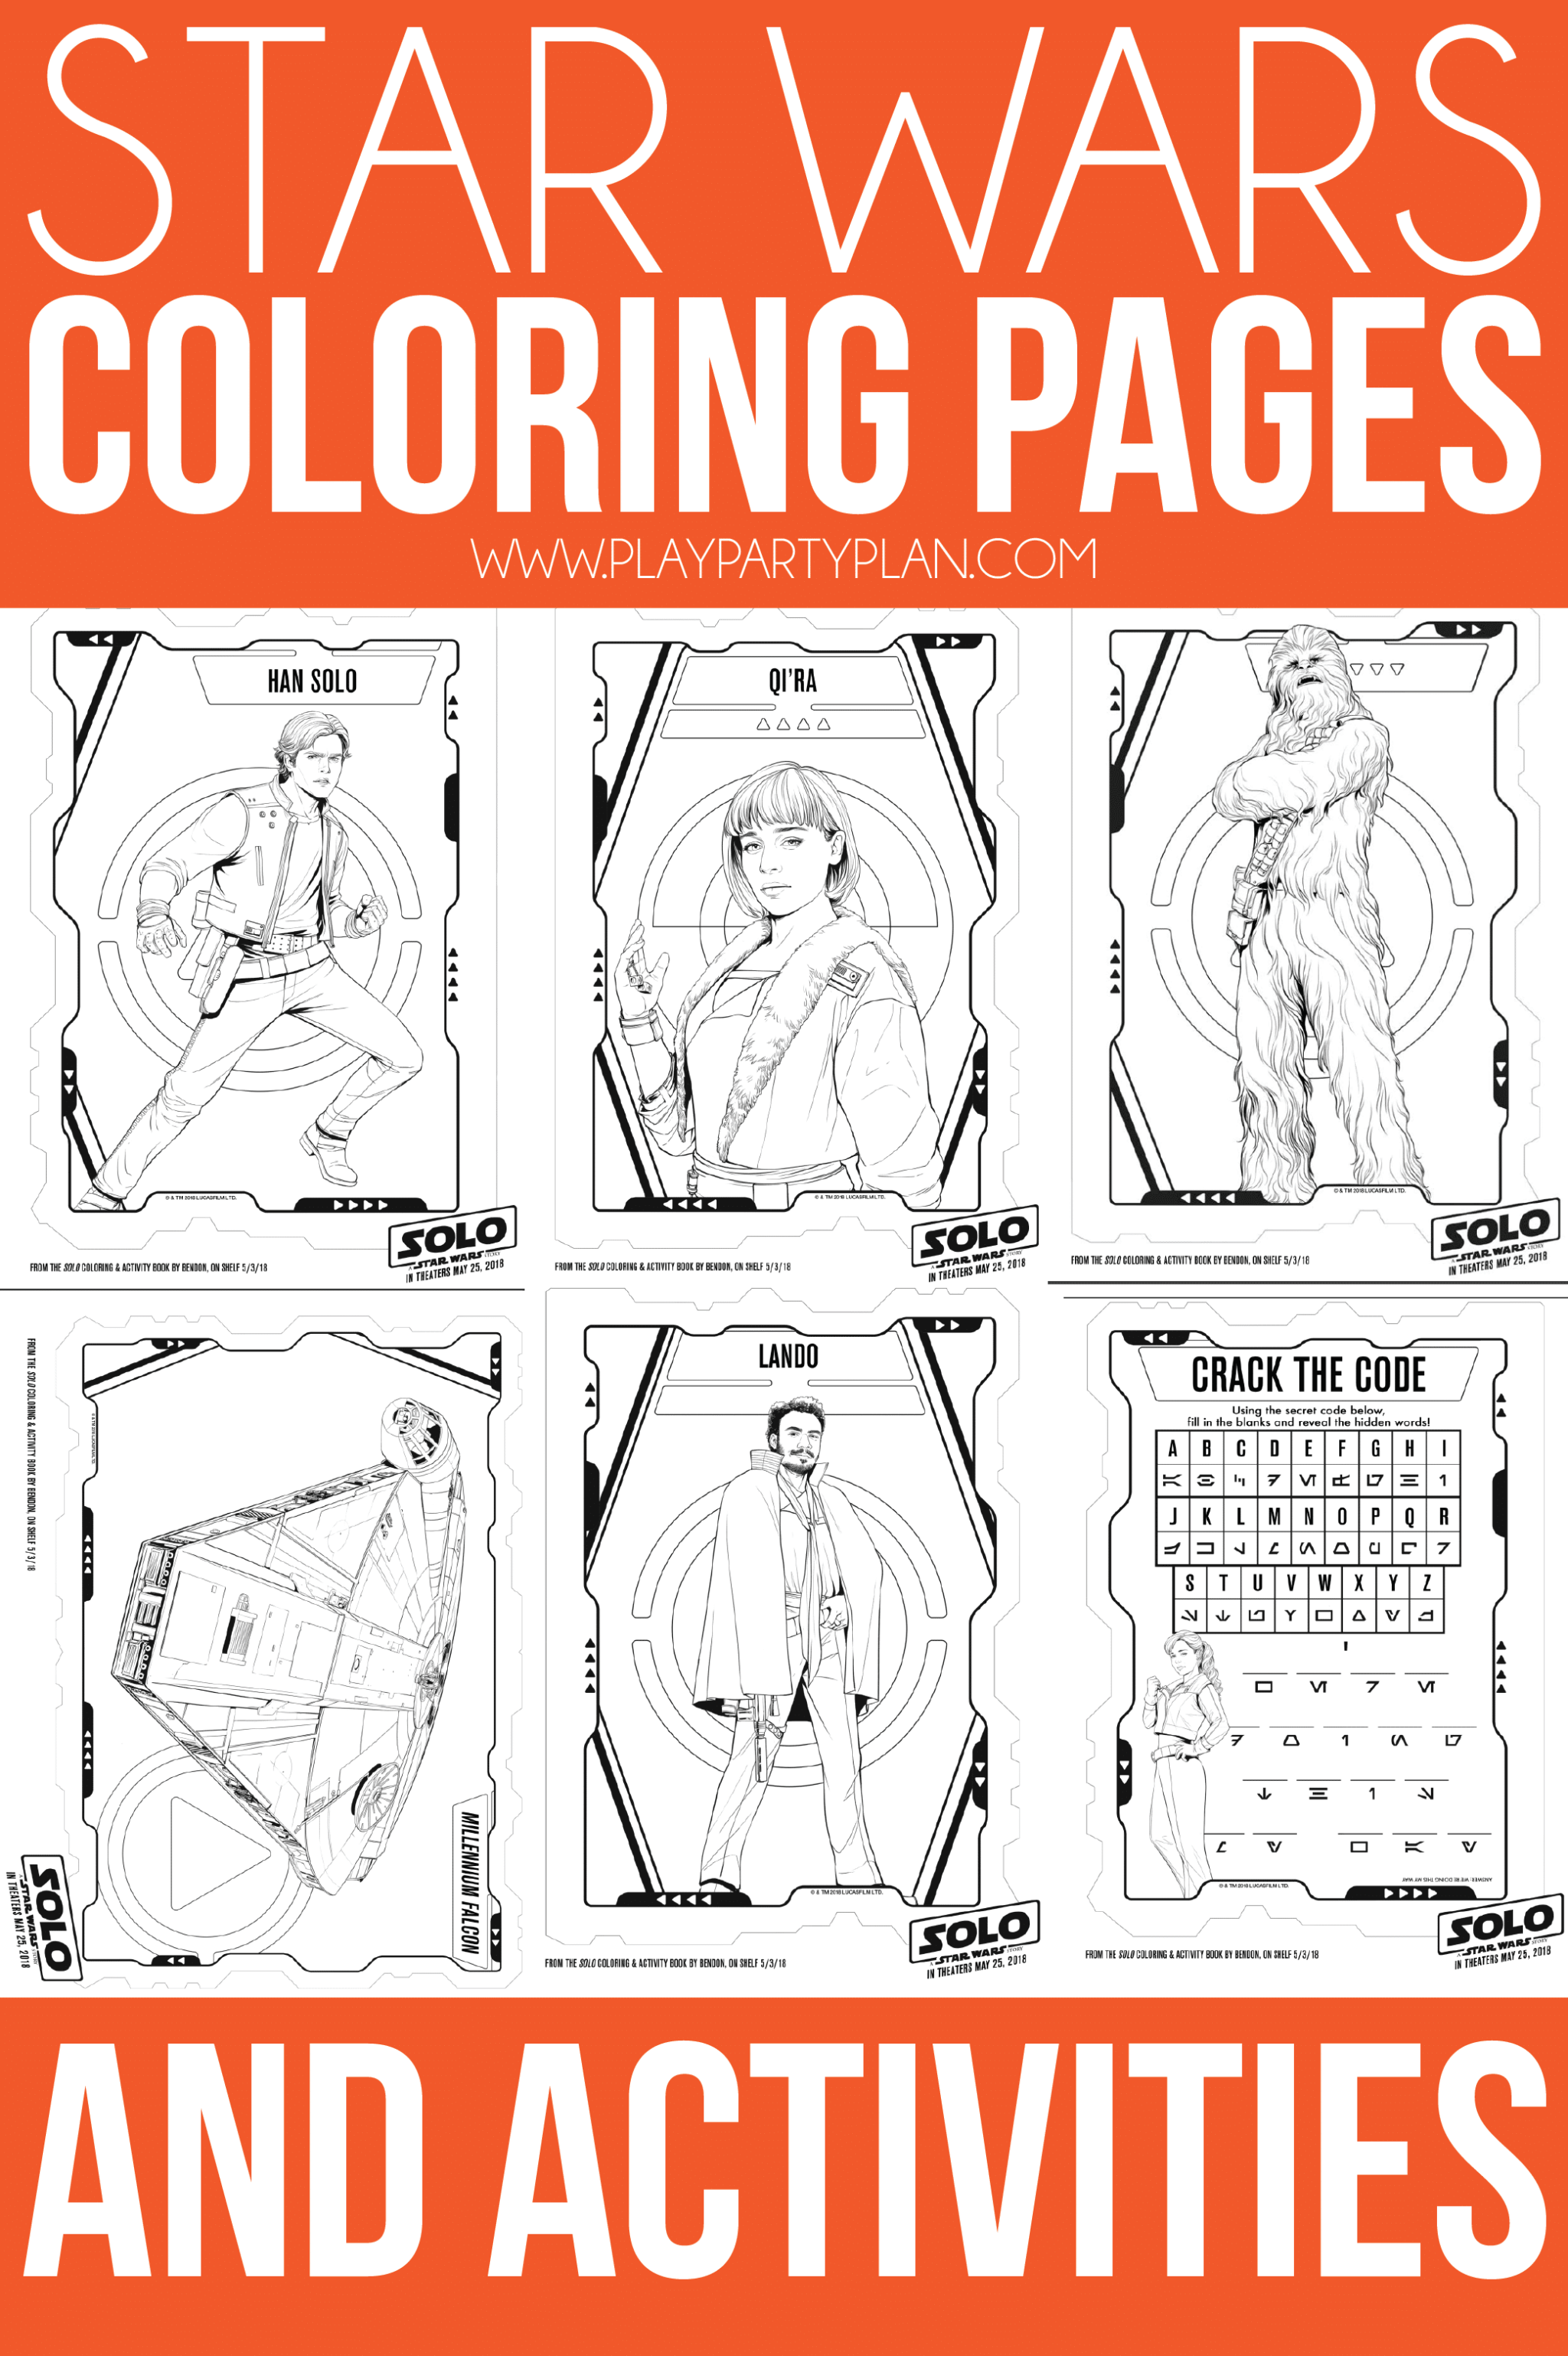 picture about Printable Star Wars Images titled Cost-free Printable Star Wars Coloring Internet pages and Pursuits